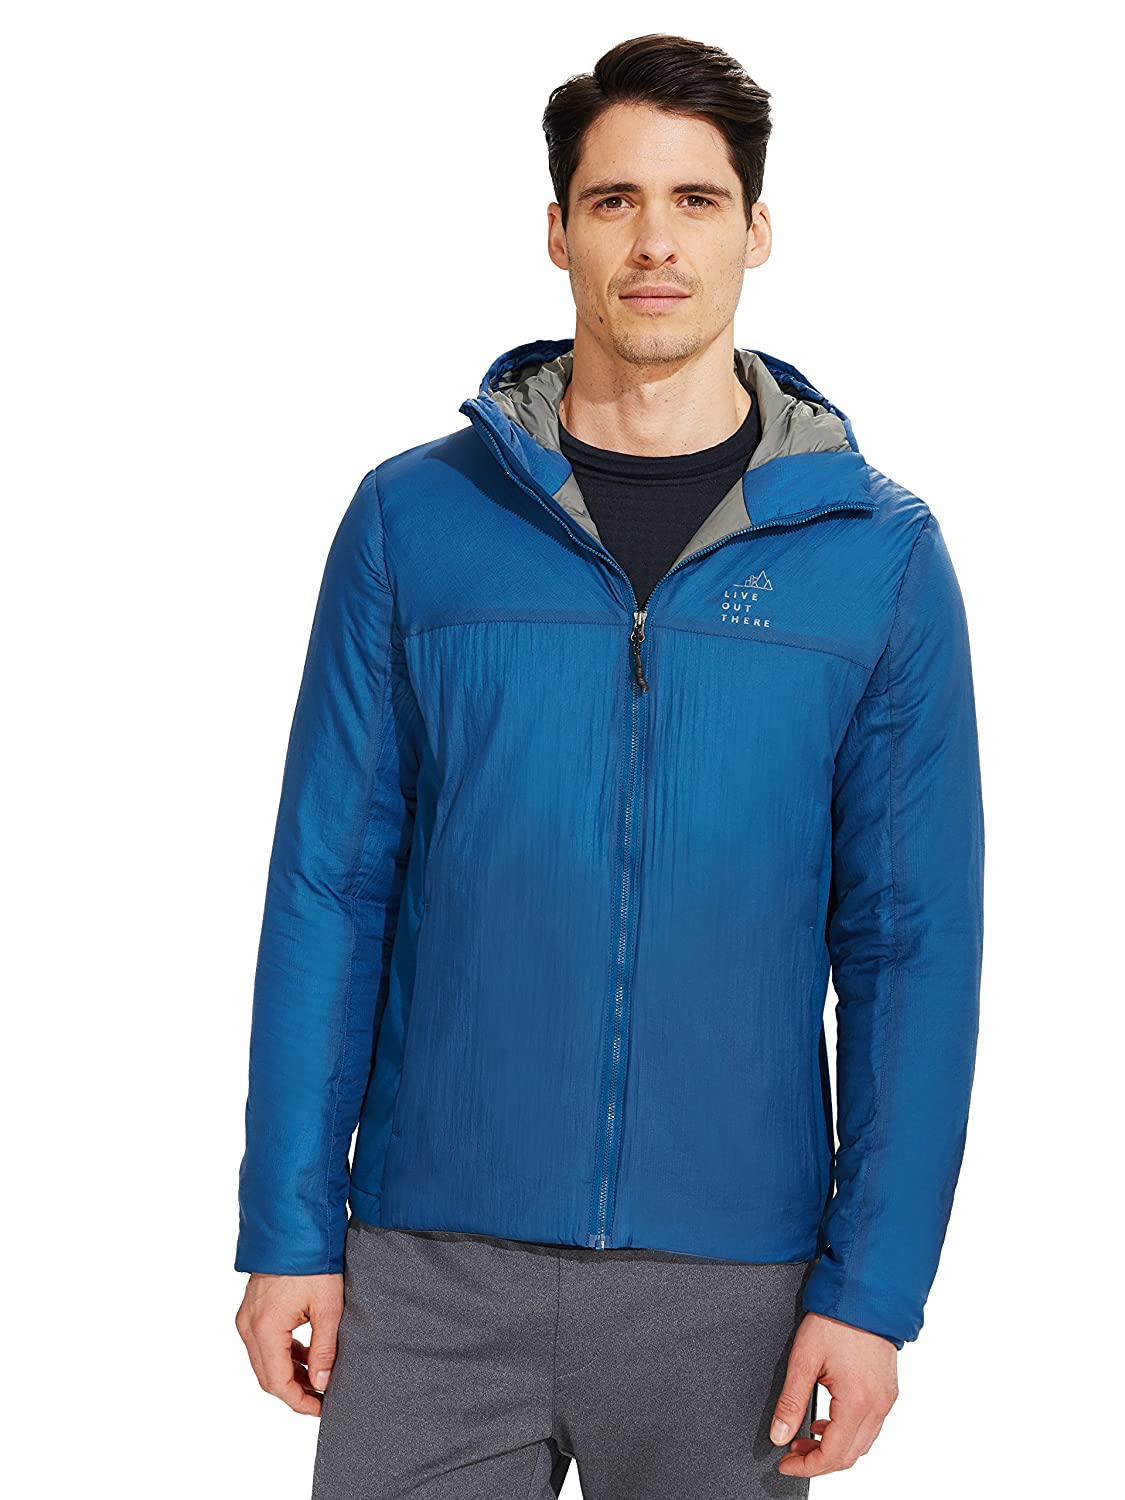 Live Out There OUTERWEAR B076T8G21D S|Poiseden Blue Poiseden Blue S